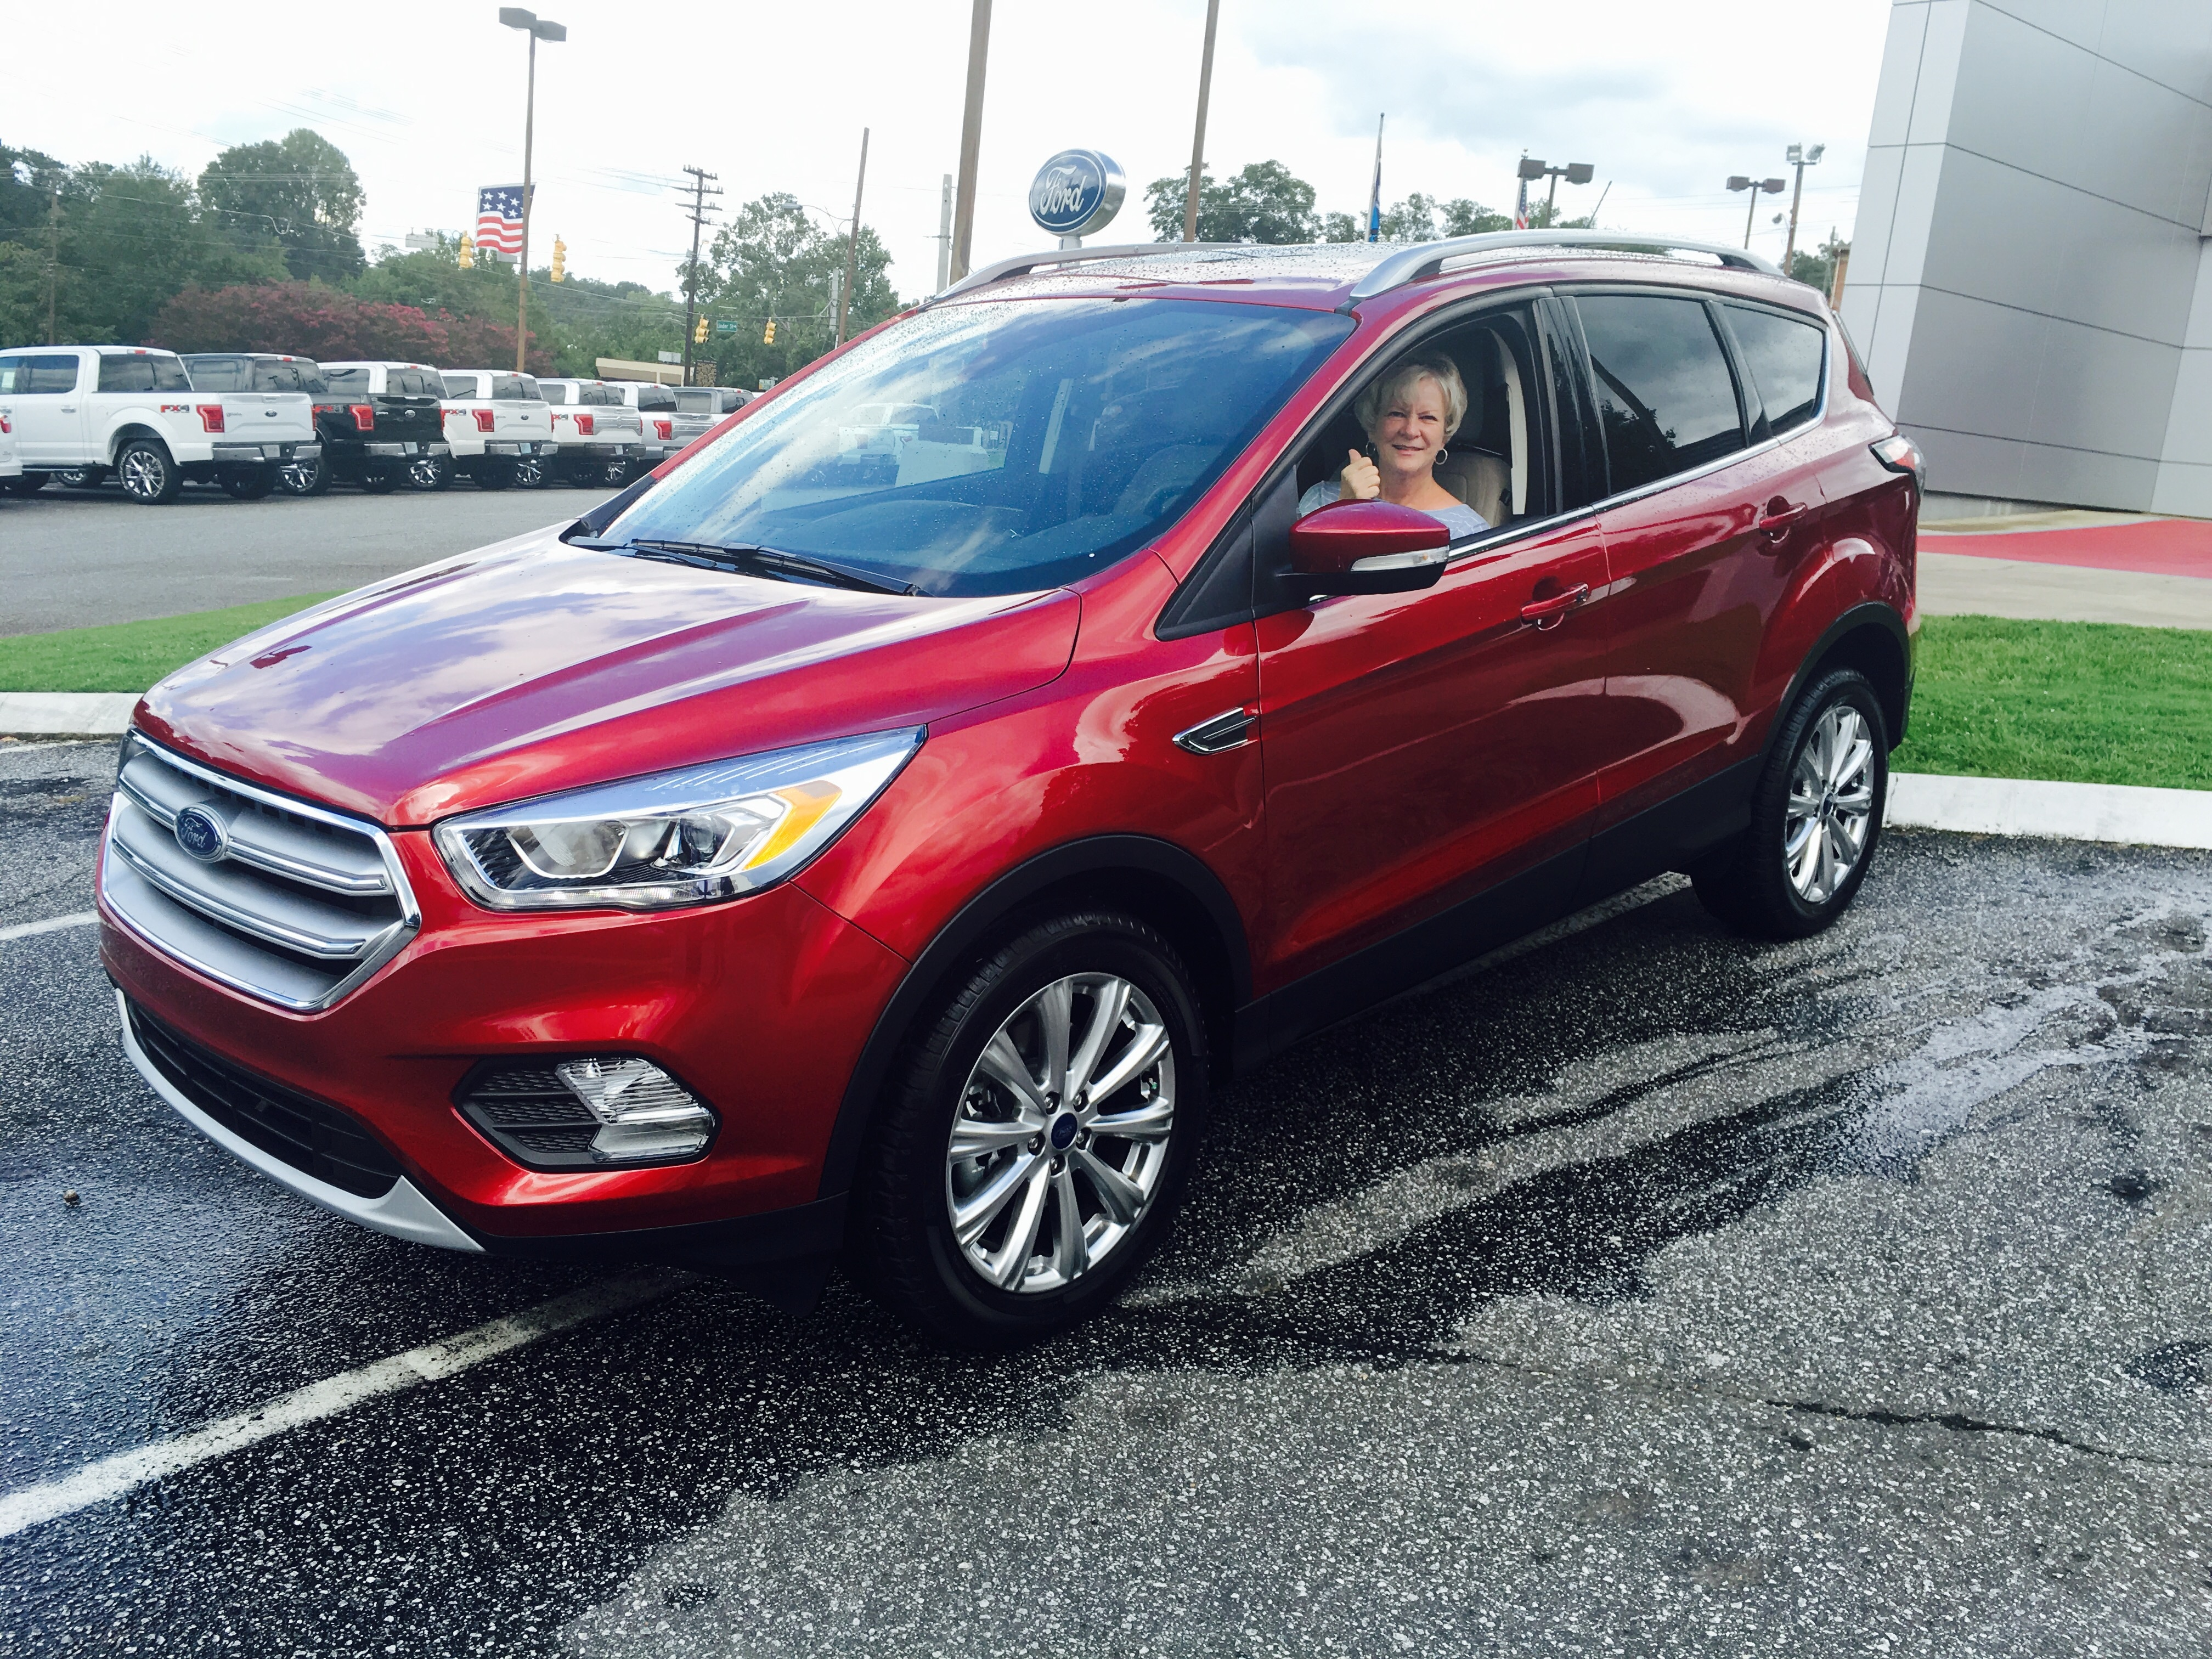 ... a new Ford Escape from Garry and received the 0% financing offer! Come in this month during the Ford Freedom Sales Event and you can be free of interest ... & Vic Bailey Ford | New Ford dealership in Spartanburg SC 29302 markmcfarlin.com